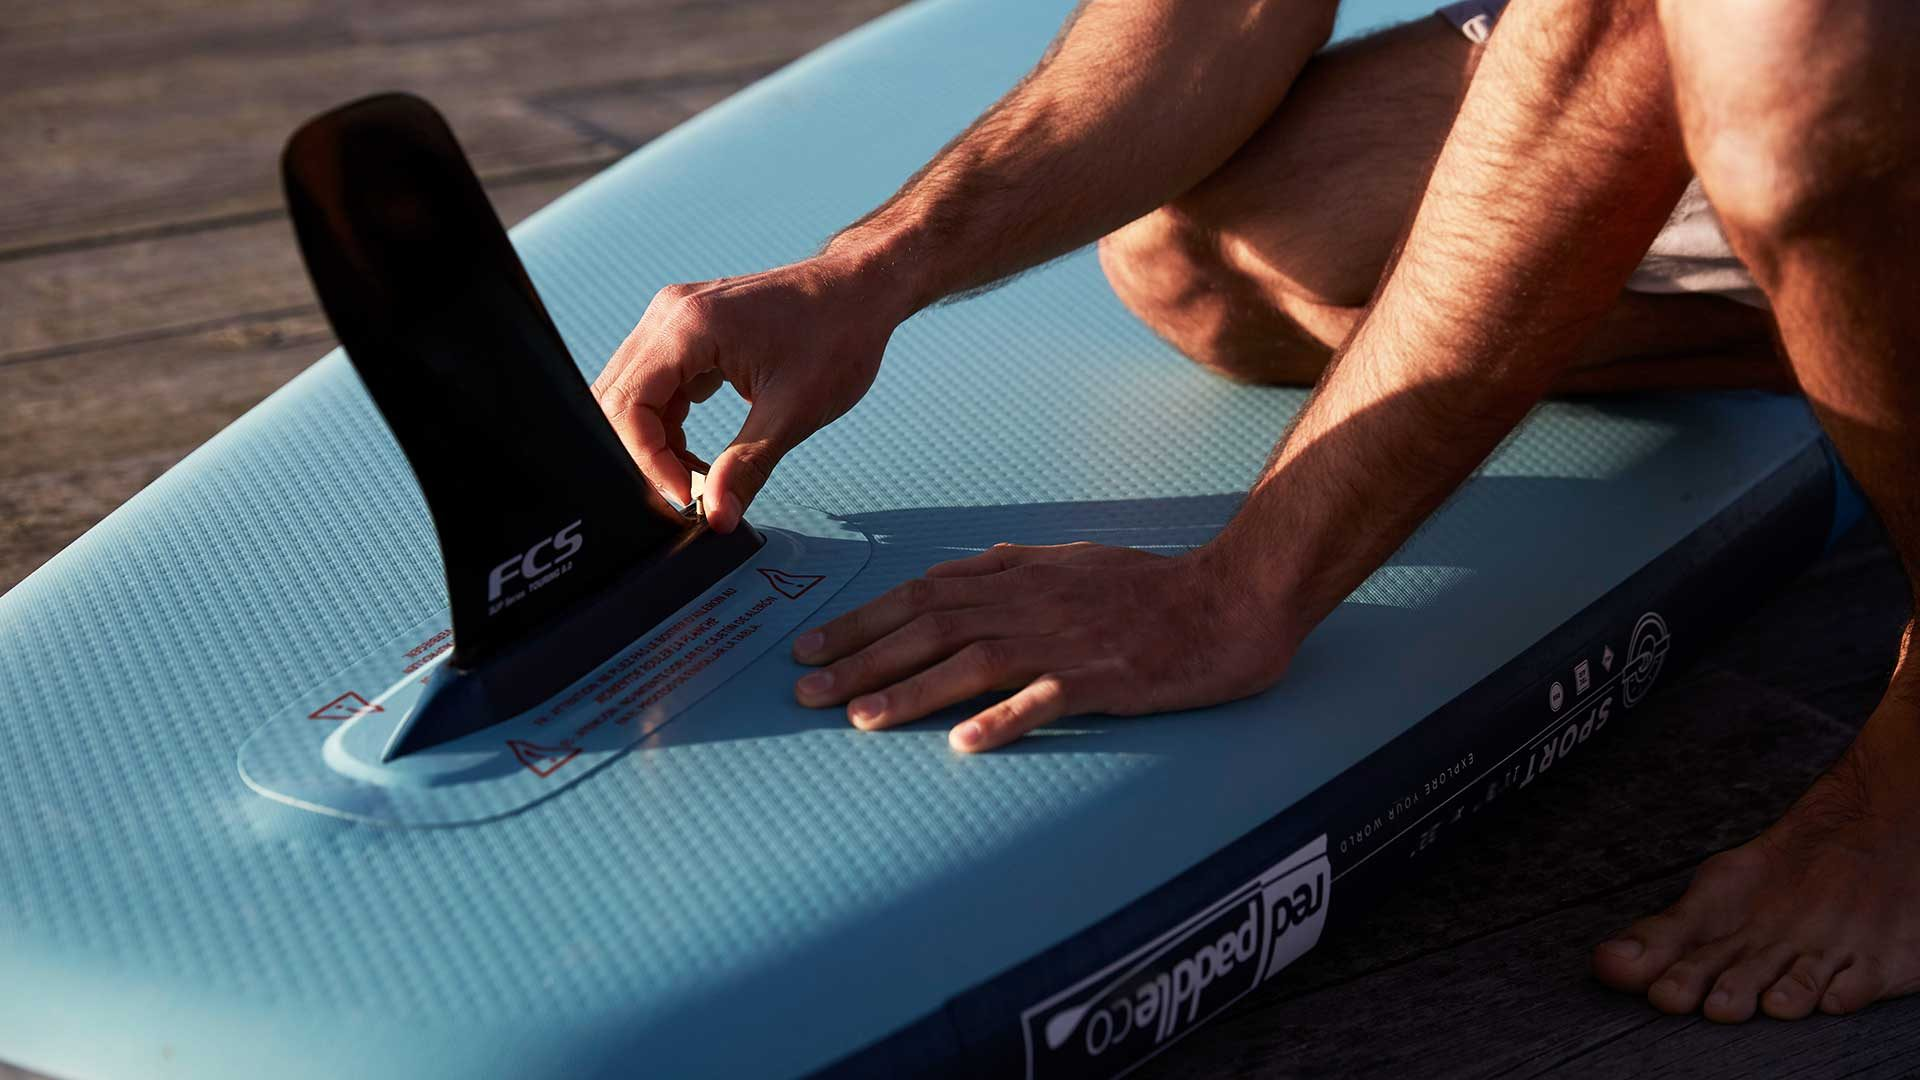 redpaddleco-110-sport-inflatable-paddle-board-desktop-gallery-fins